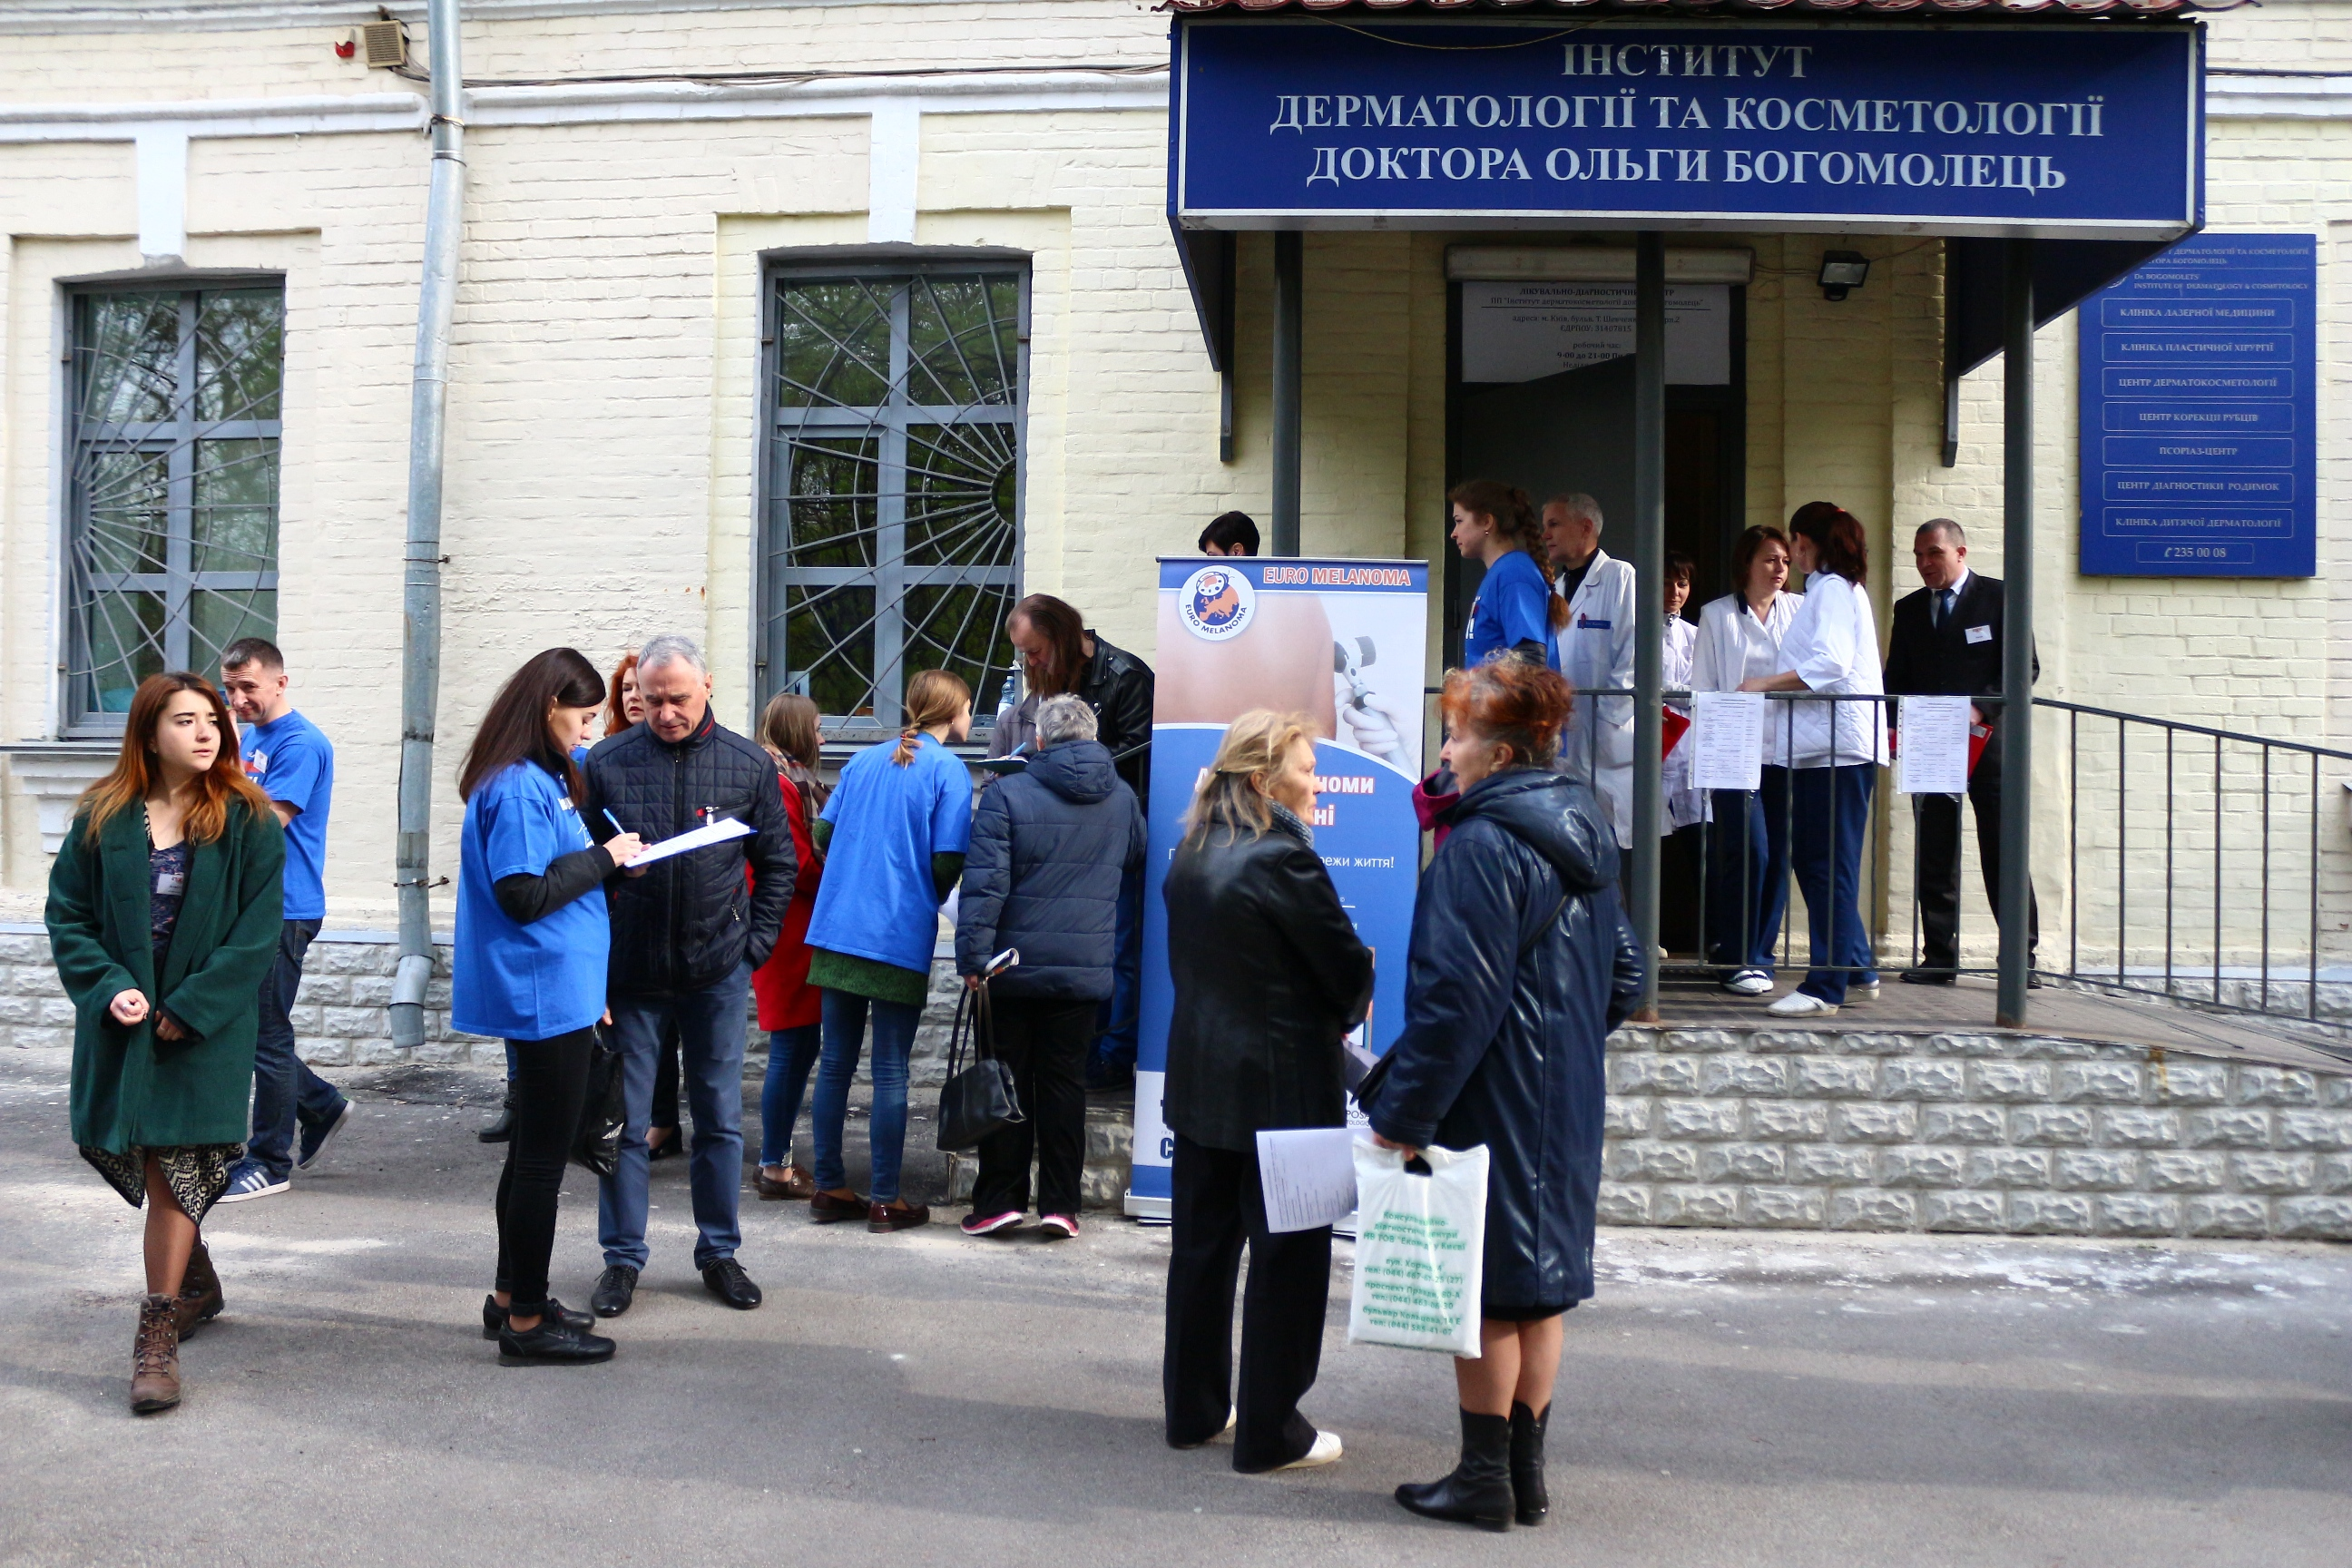 April 13, 2017 in Ukraine, there was the ninth All-Ukrainian Day of Melanoma Diagnosis